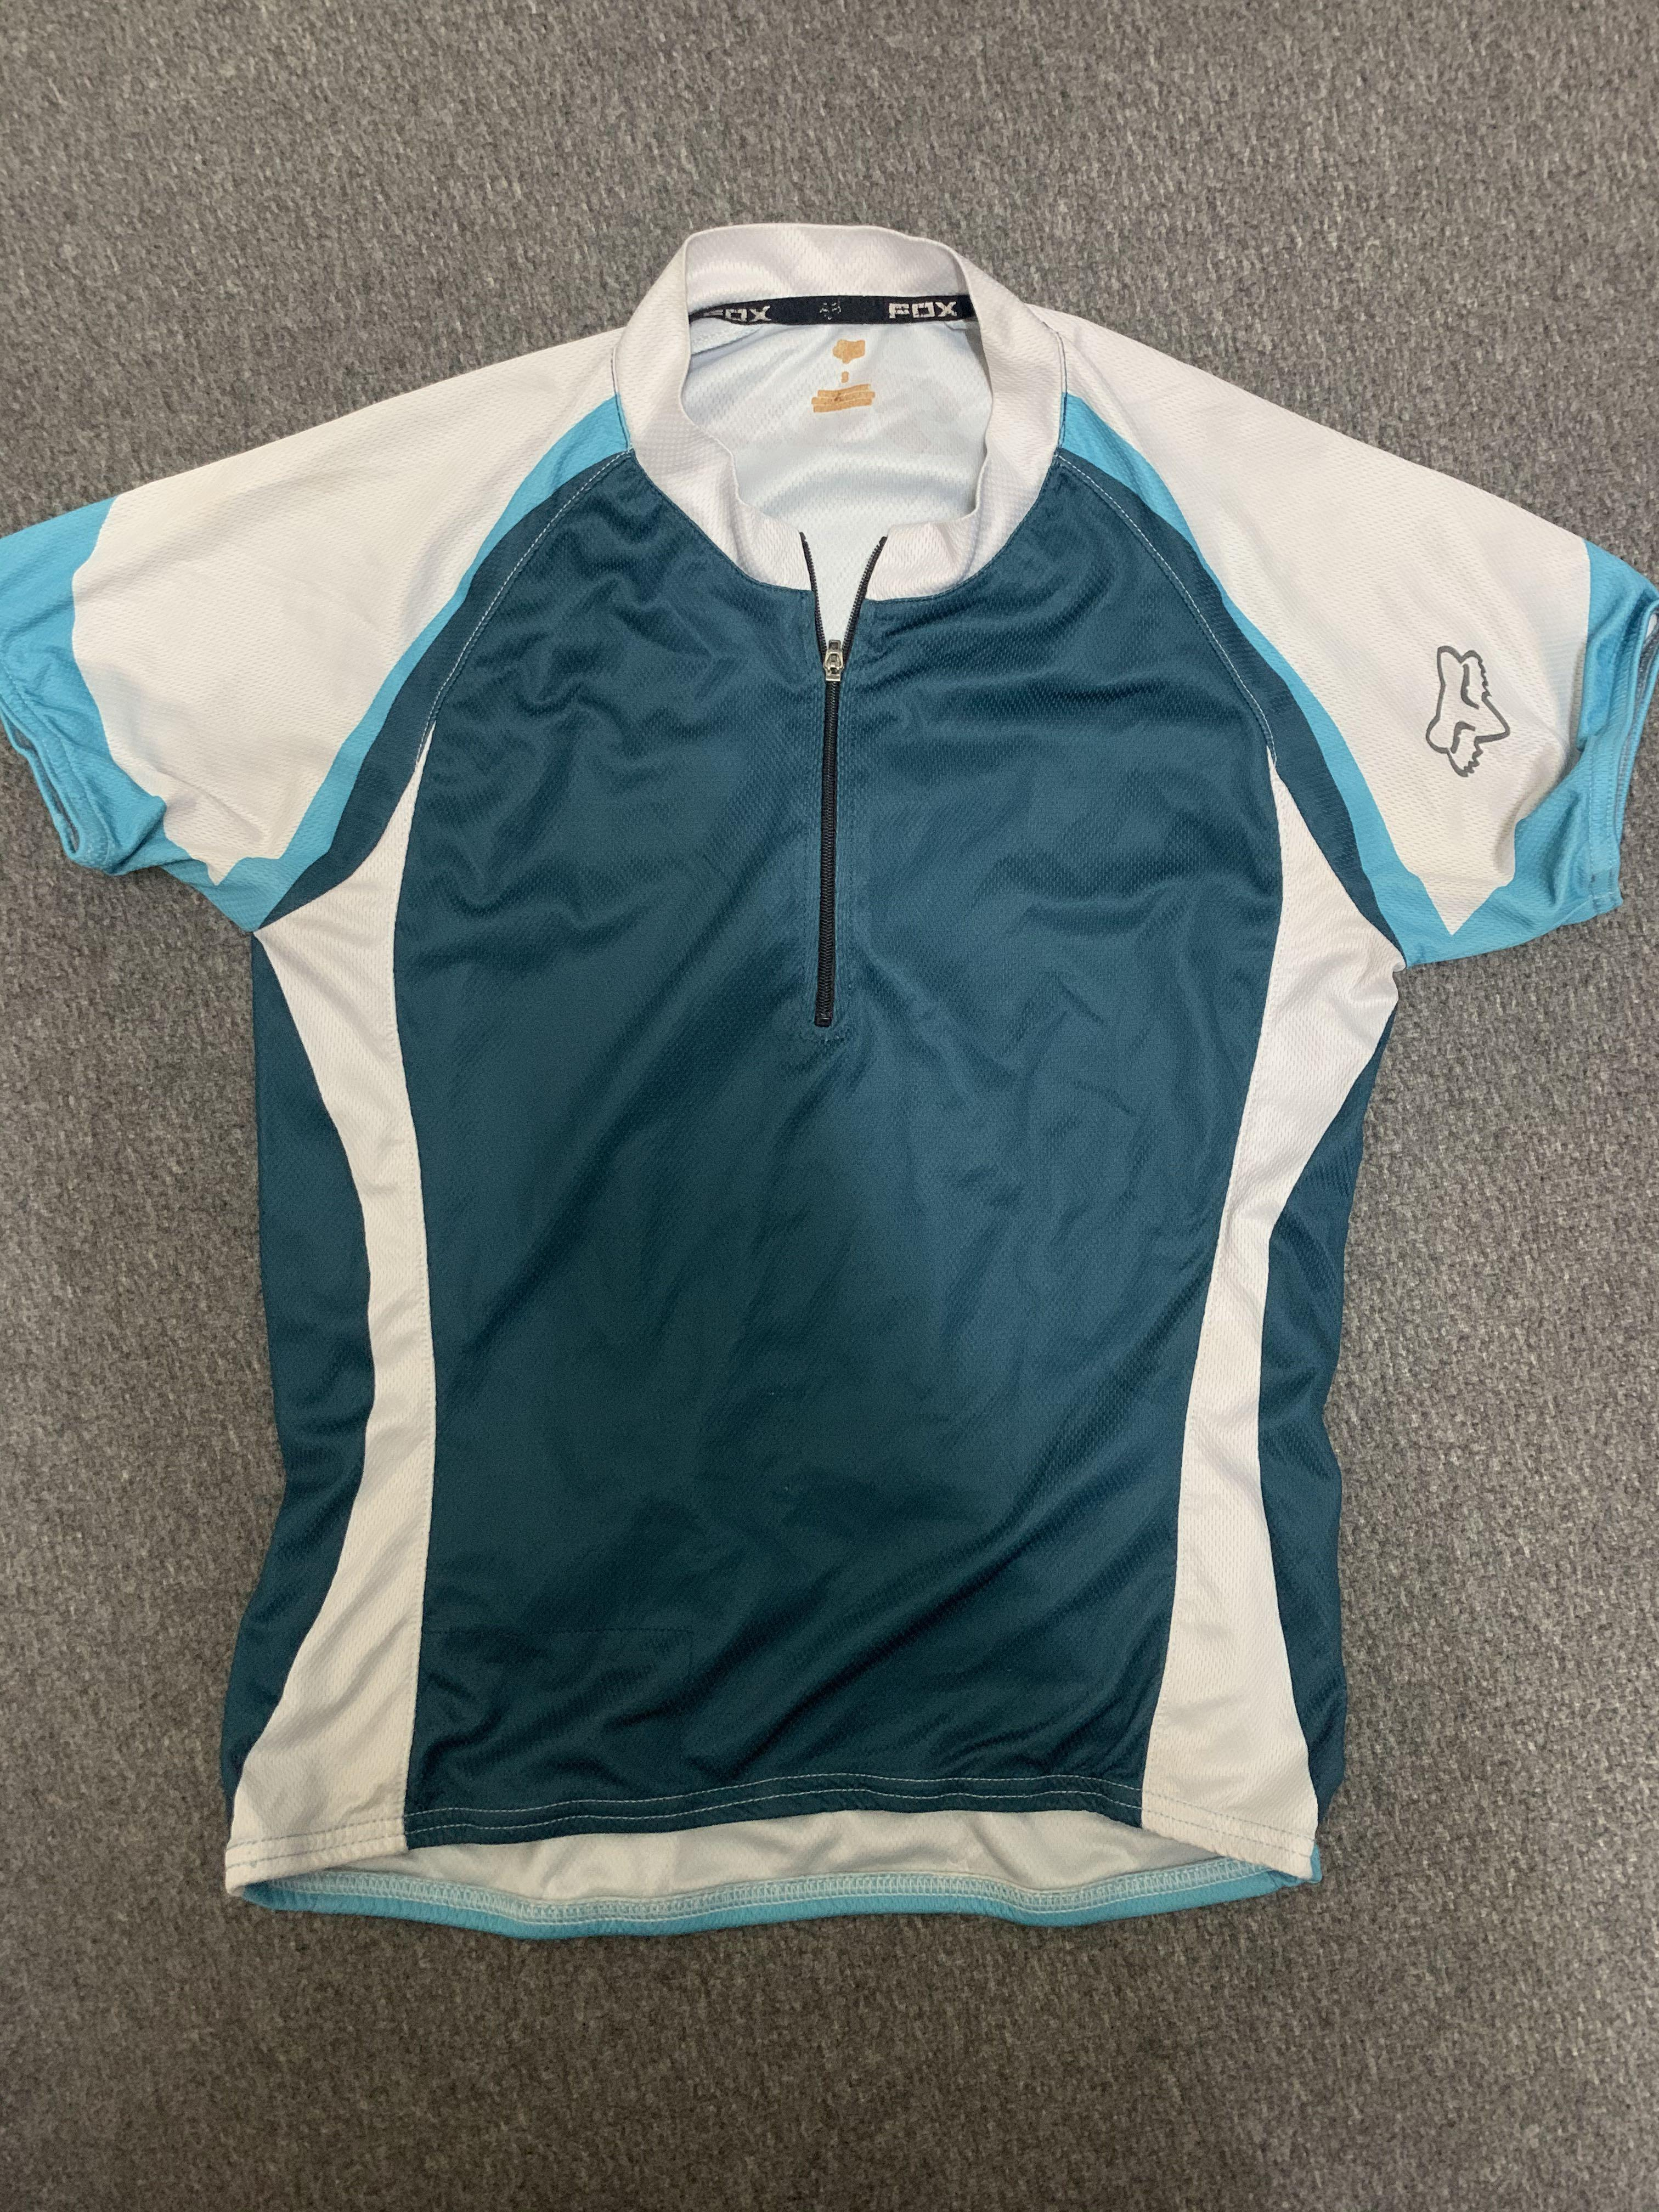 Fox Cycling Jersey Size S